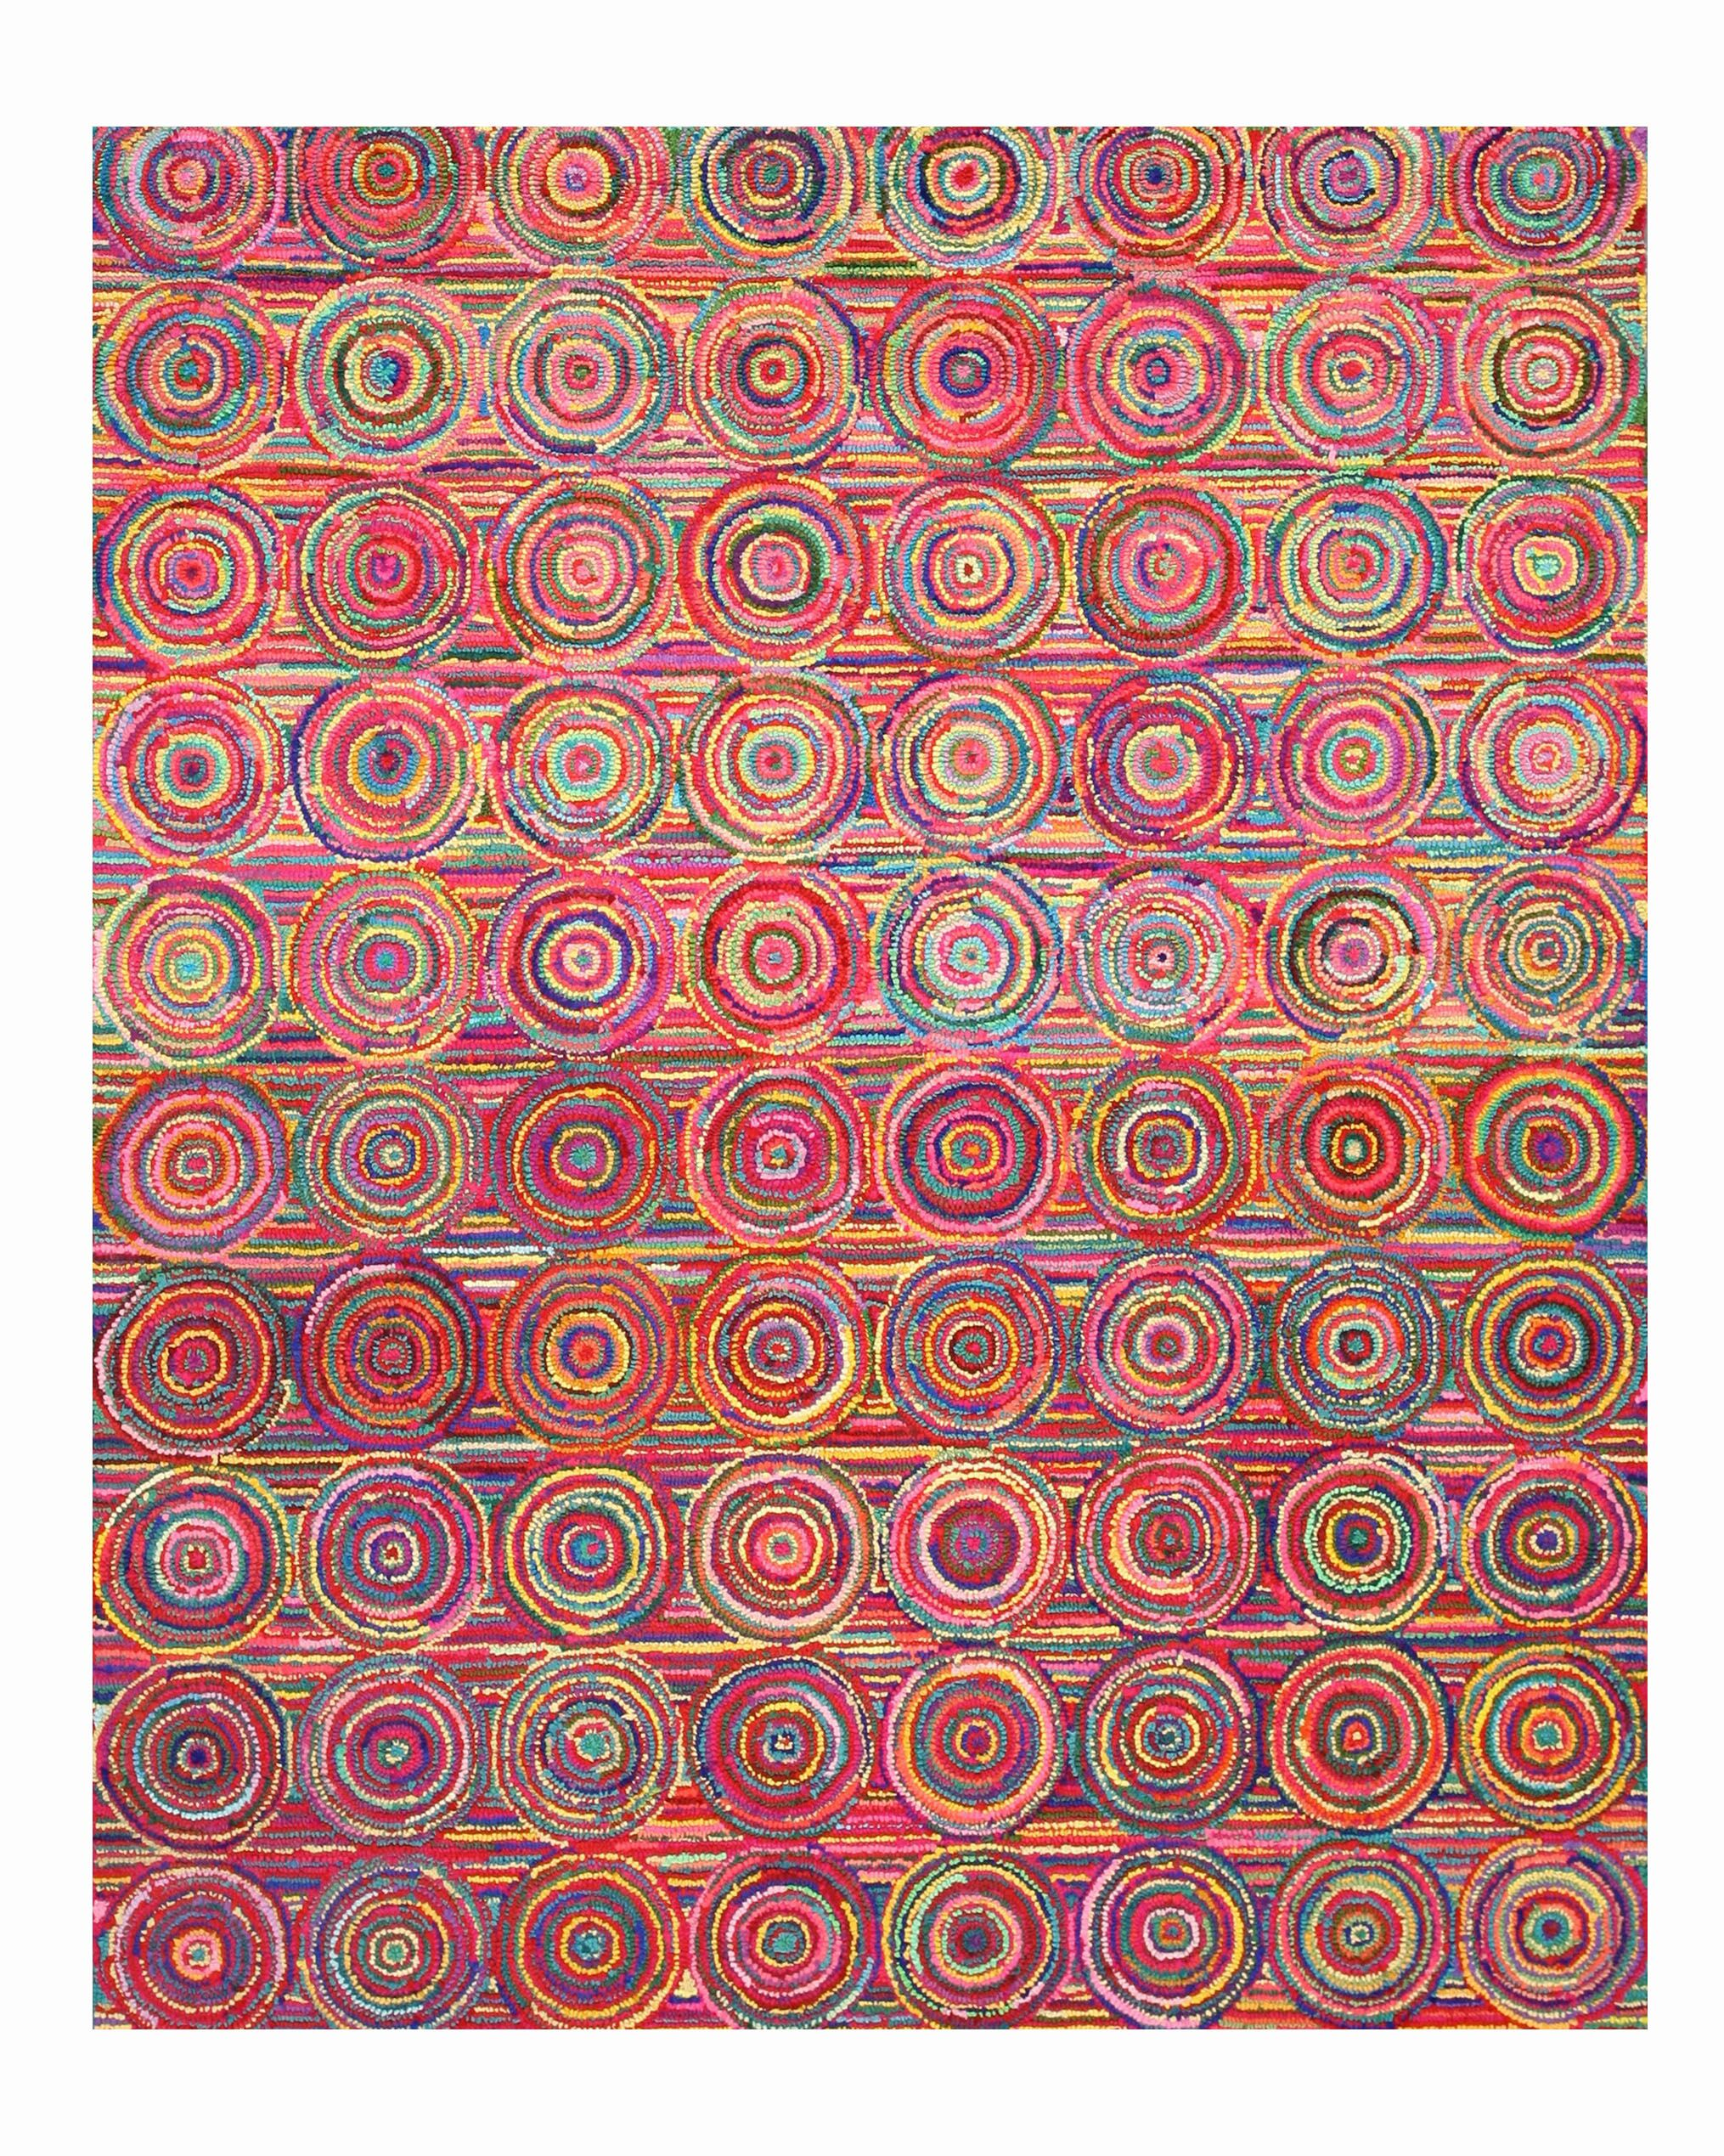 Hand-Tufted Pink / Yellow Area Rug Rug Size: 5' x 8'